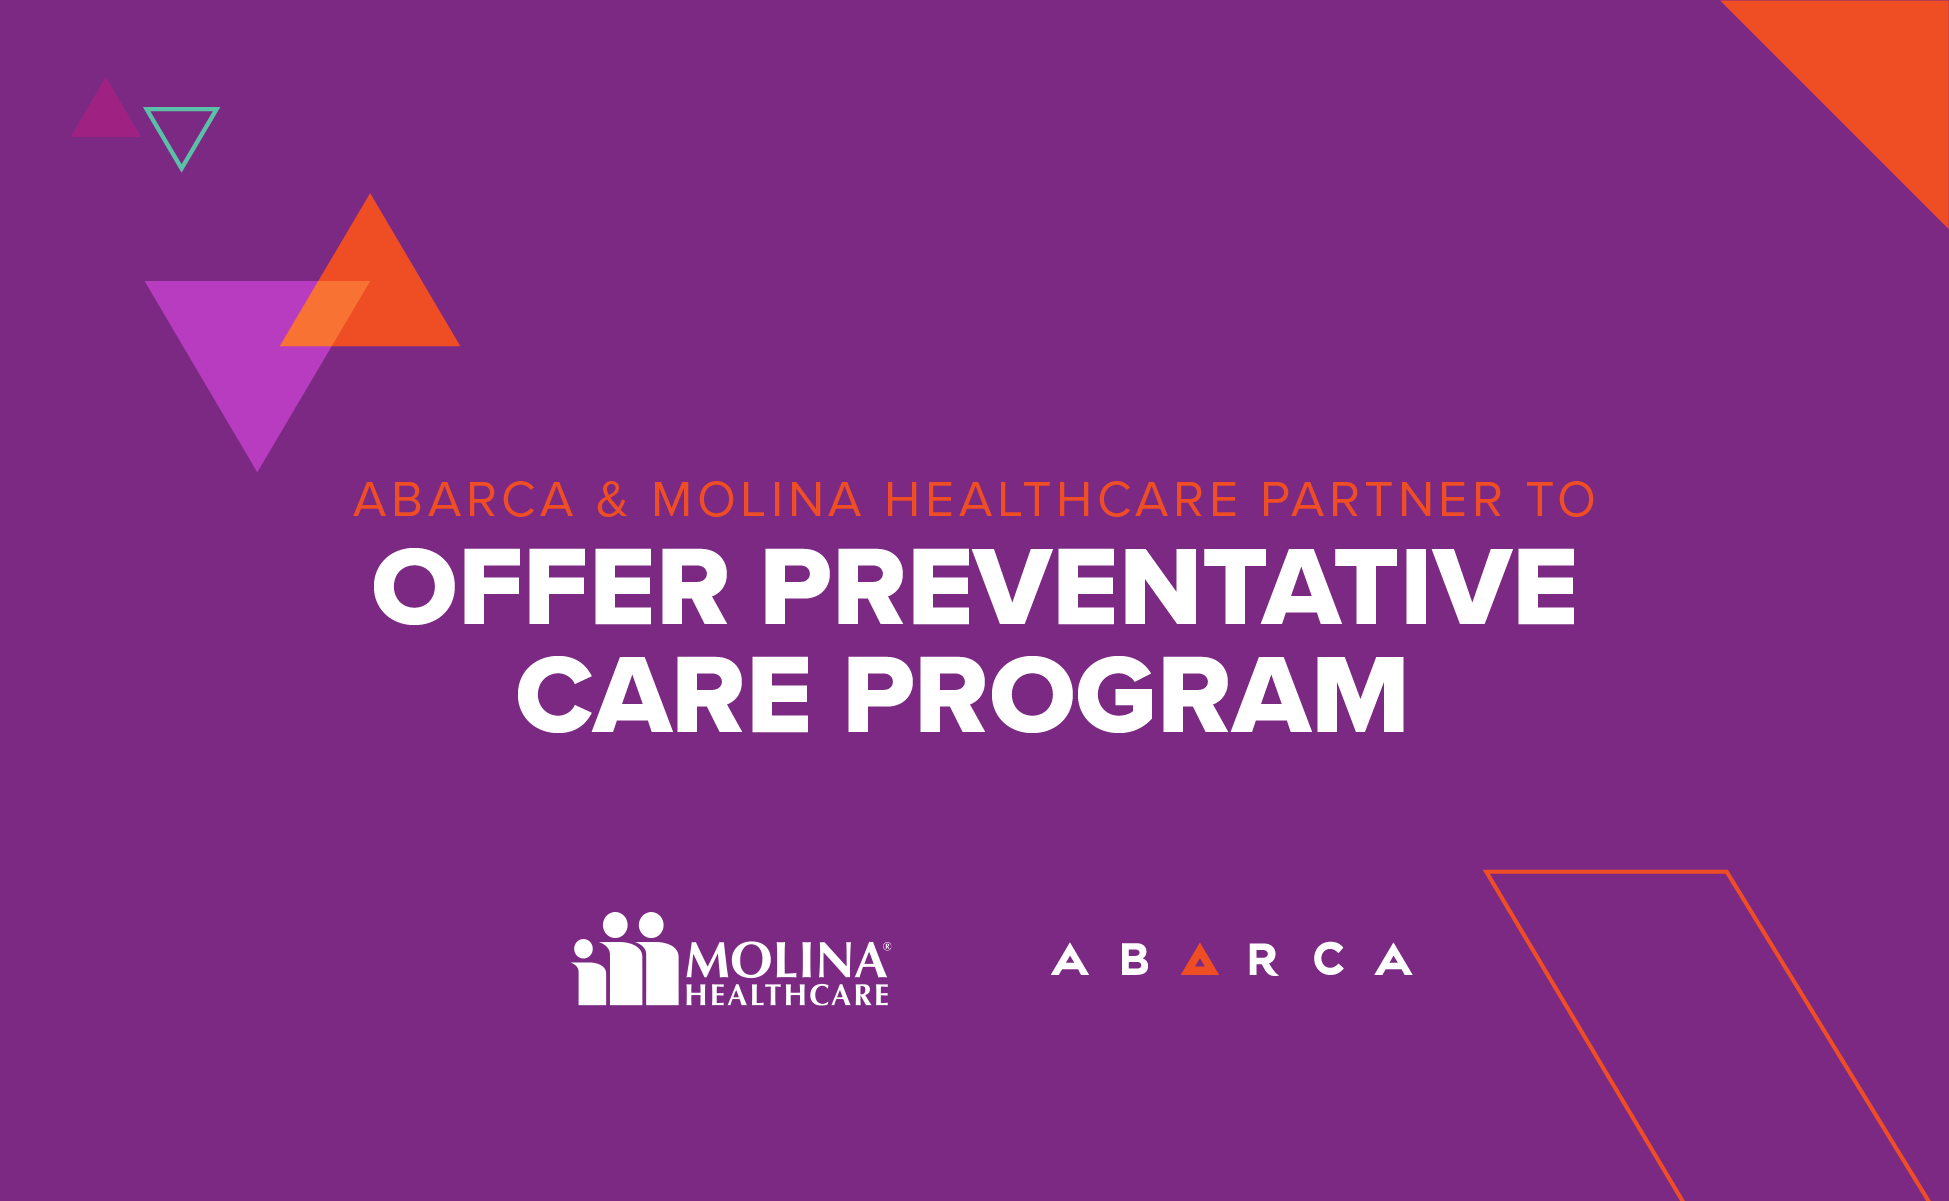 Abarca and Molina Healthcare partner to offer preventative care program for members